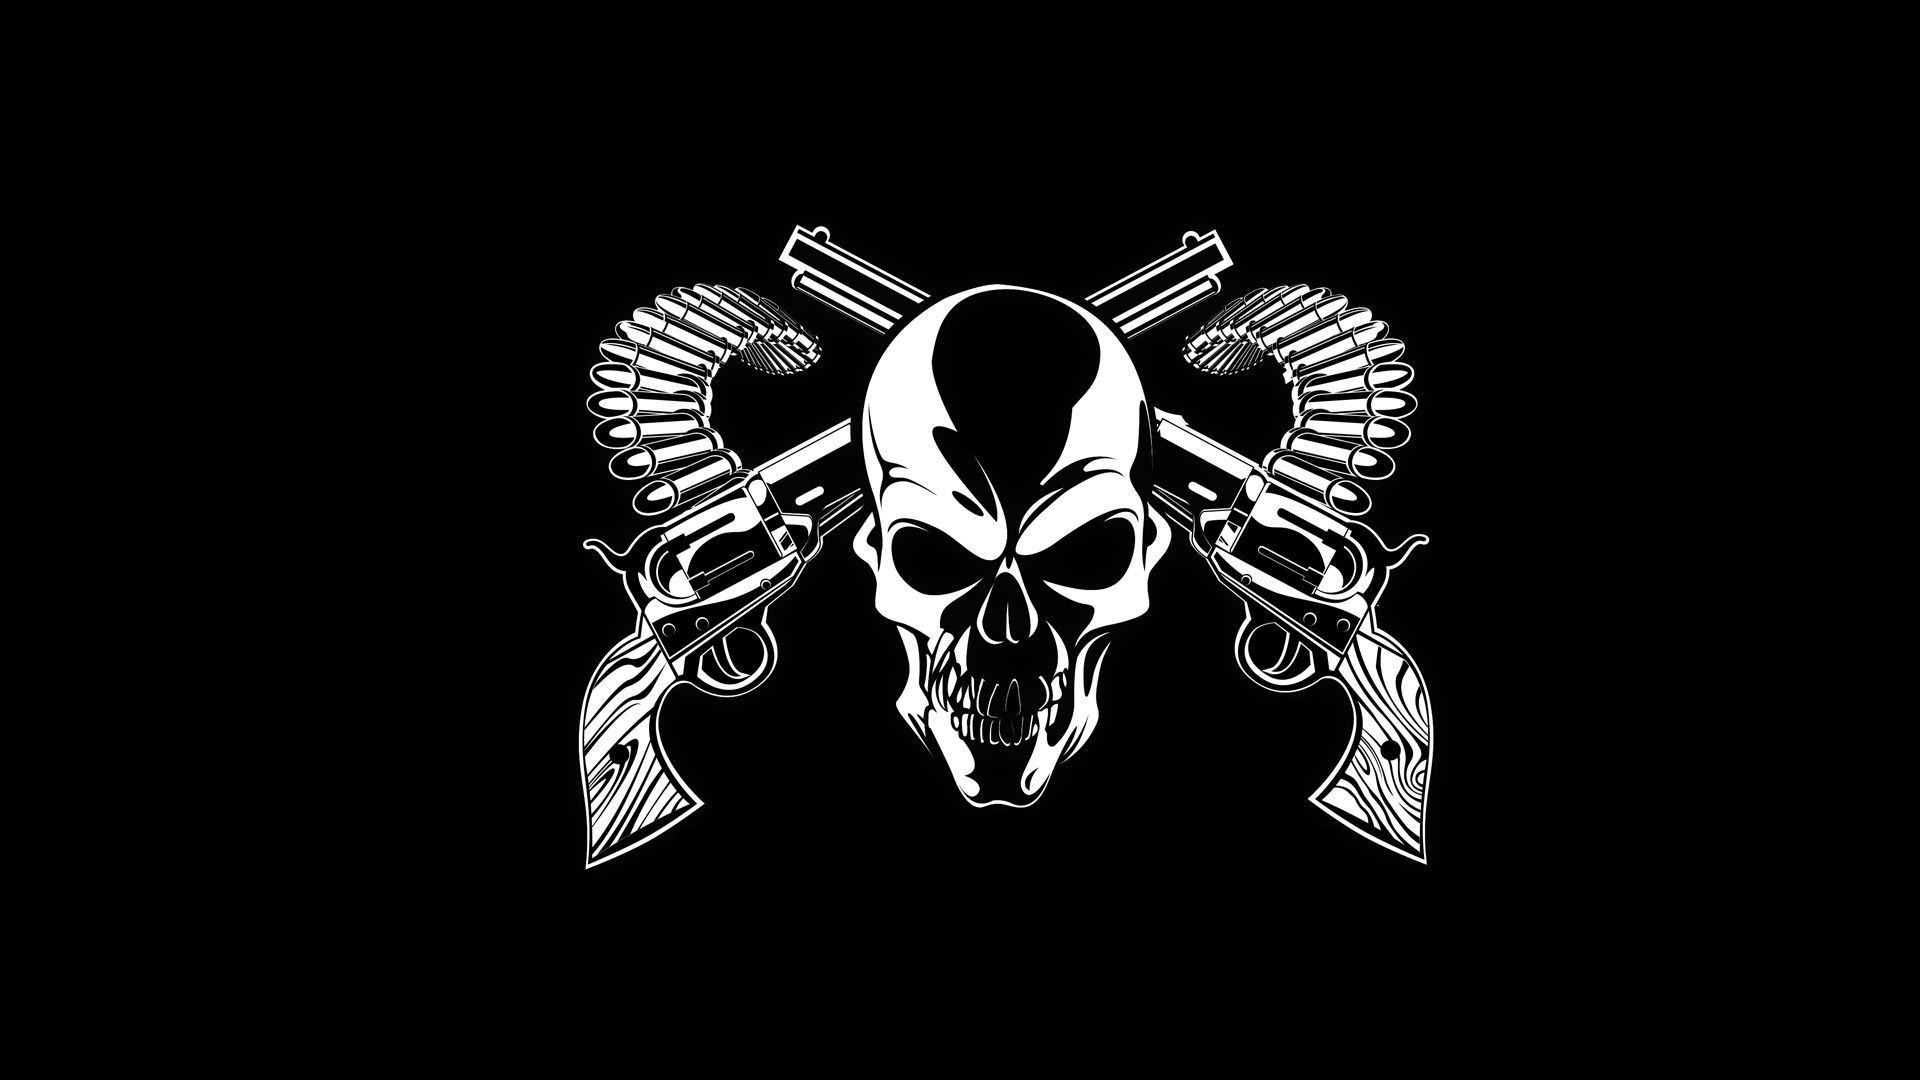 Res: 1920x1080, Free Skull Wallpapers | Wallpapers, Backgrounds, Images, Art Photos.